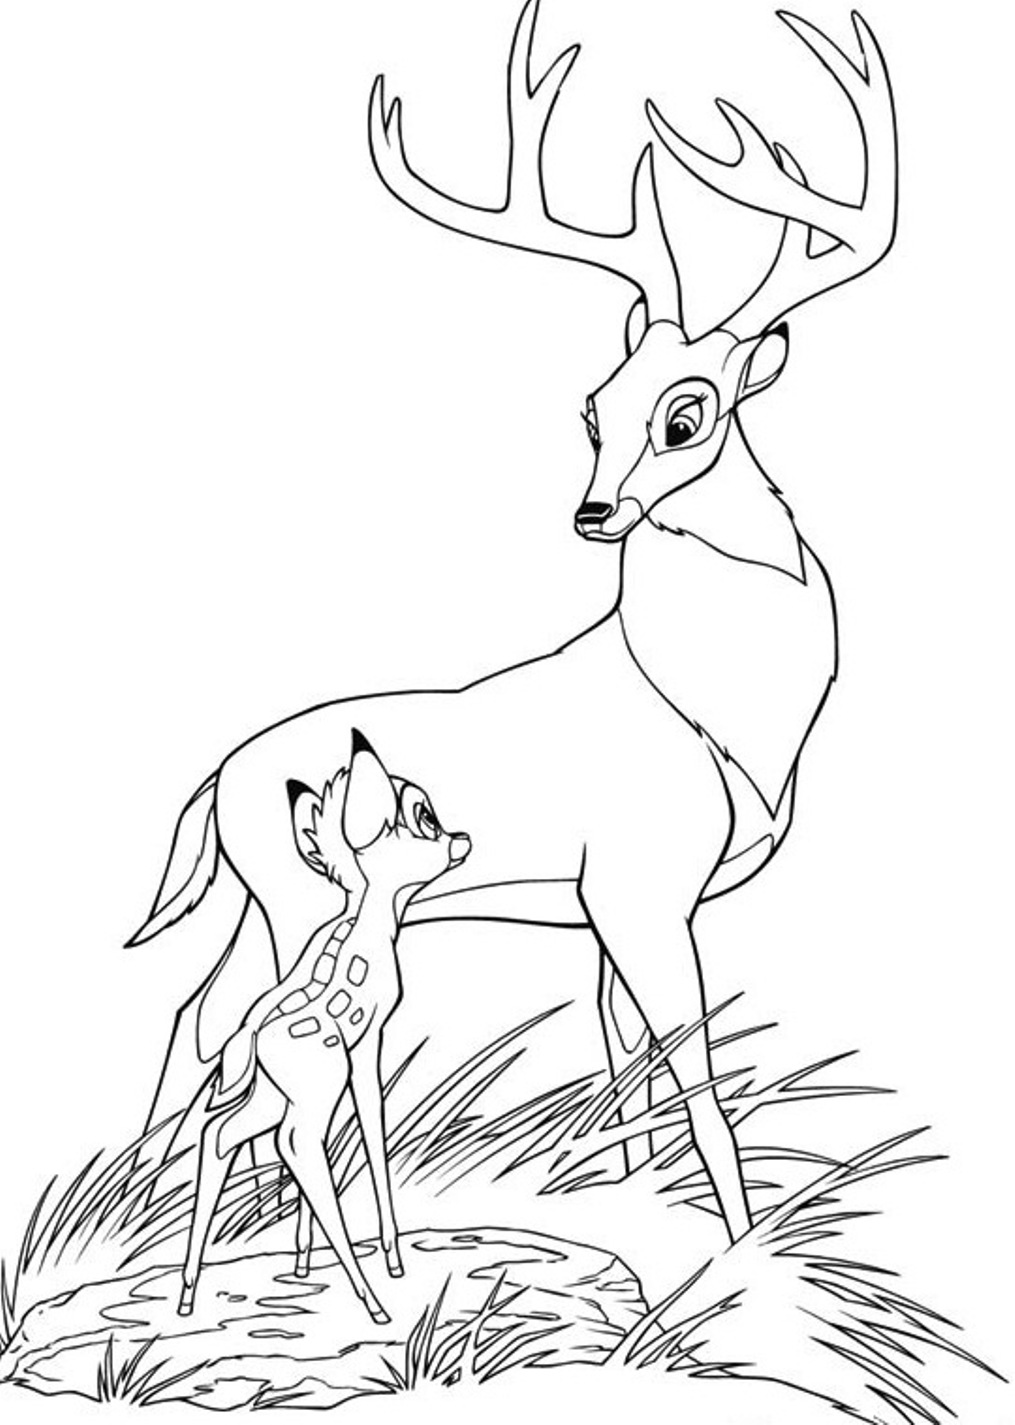 bambi coloring pages bambi coloring pages to download and print for free pages coloring bambi